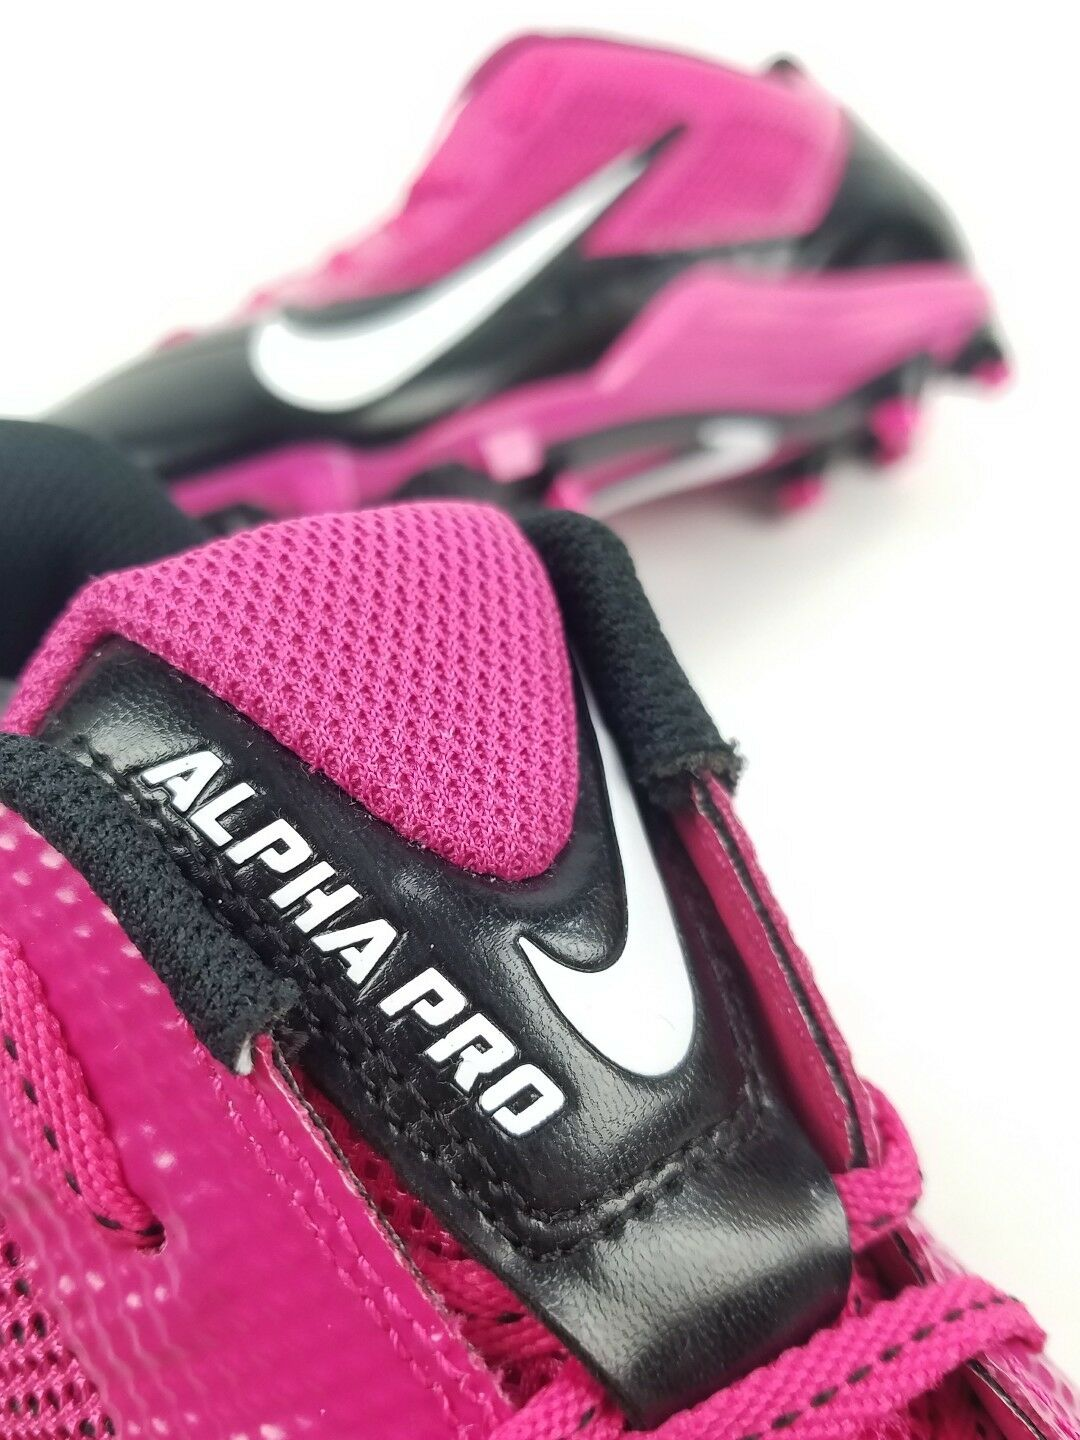 81146eb0b211 ... Men Nike Pink Black Alpha Pro TD TD TD Flywire Football Shoe Cleats  579545-016 ...